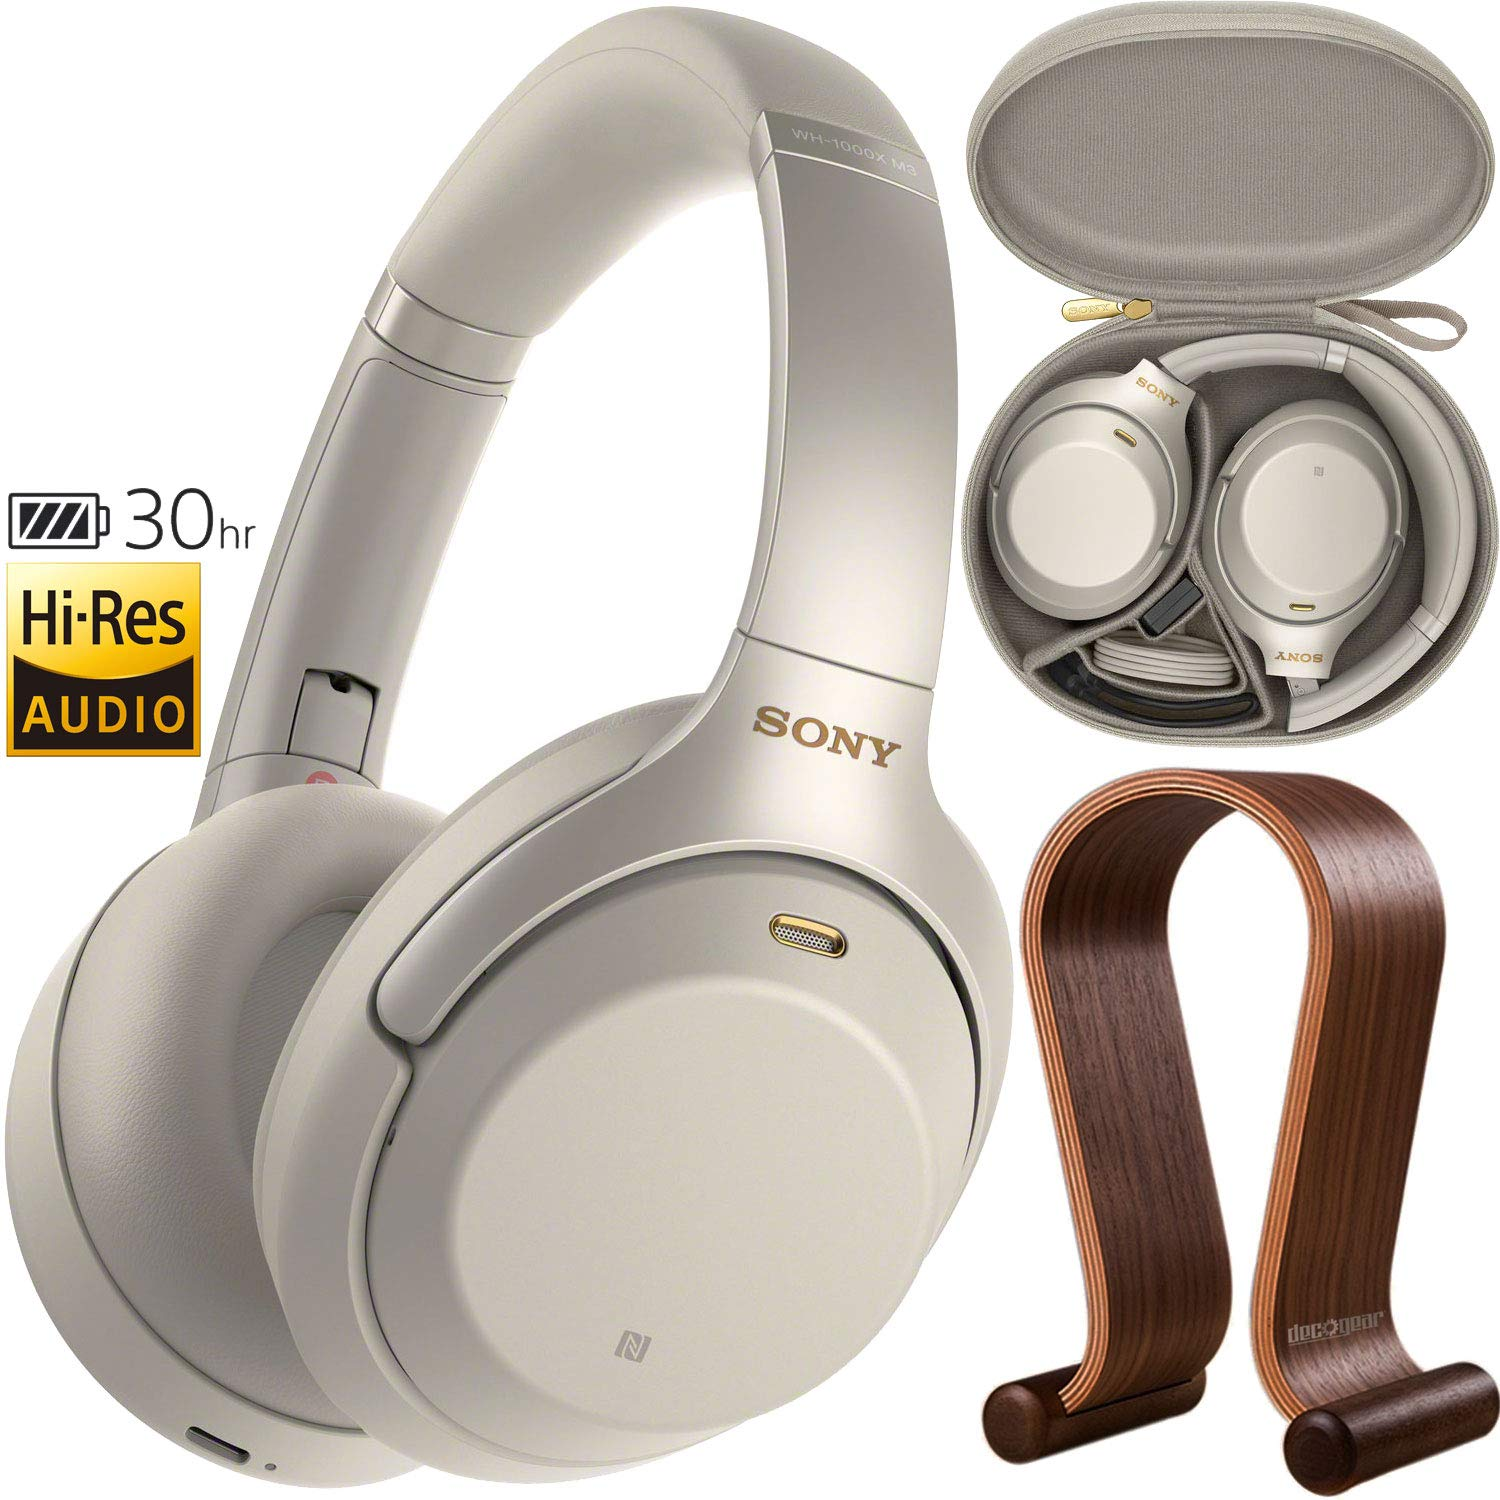 Sony WH1000XM3 Premium Noise Cancelling Wireless Bluetooth Headphones with Built in Microphone WH-1000XM3 S Silver Deco Gear Wood Headphone Display Stand Holder Protective Travel Carry Case